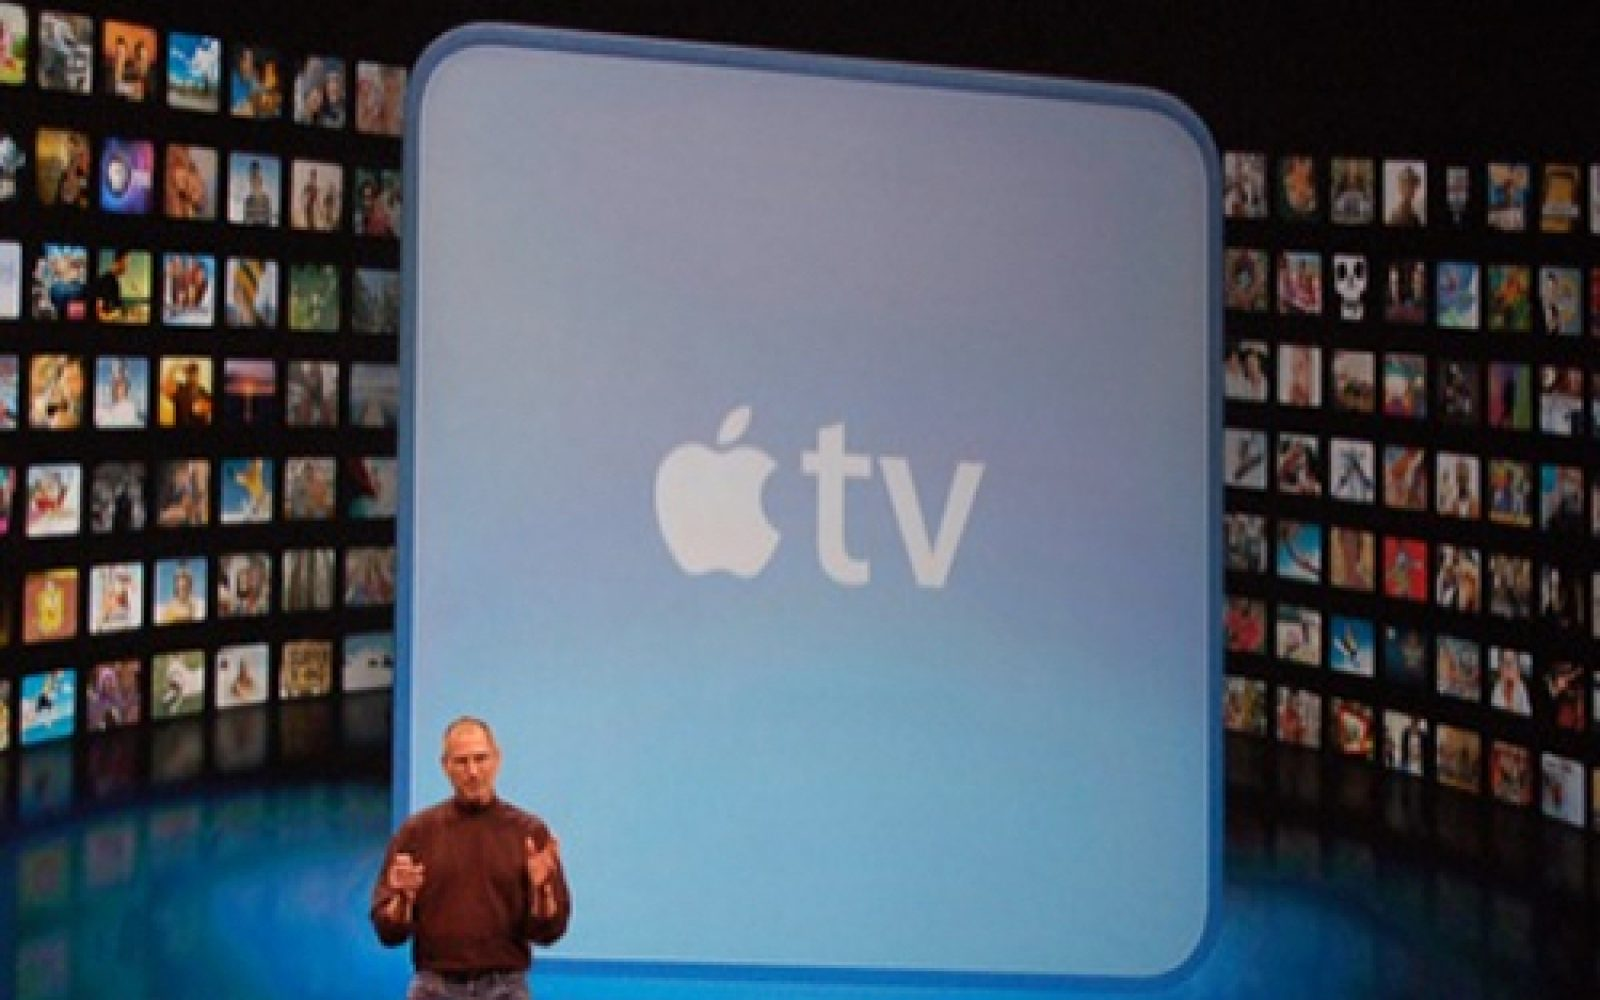 Users finding first-generation Apple TVs unable to connect